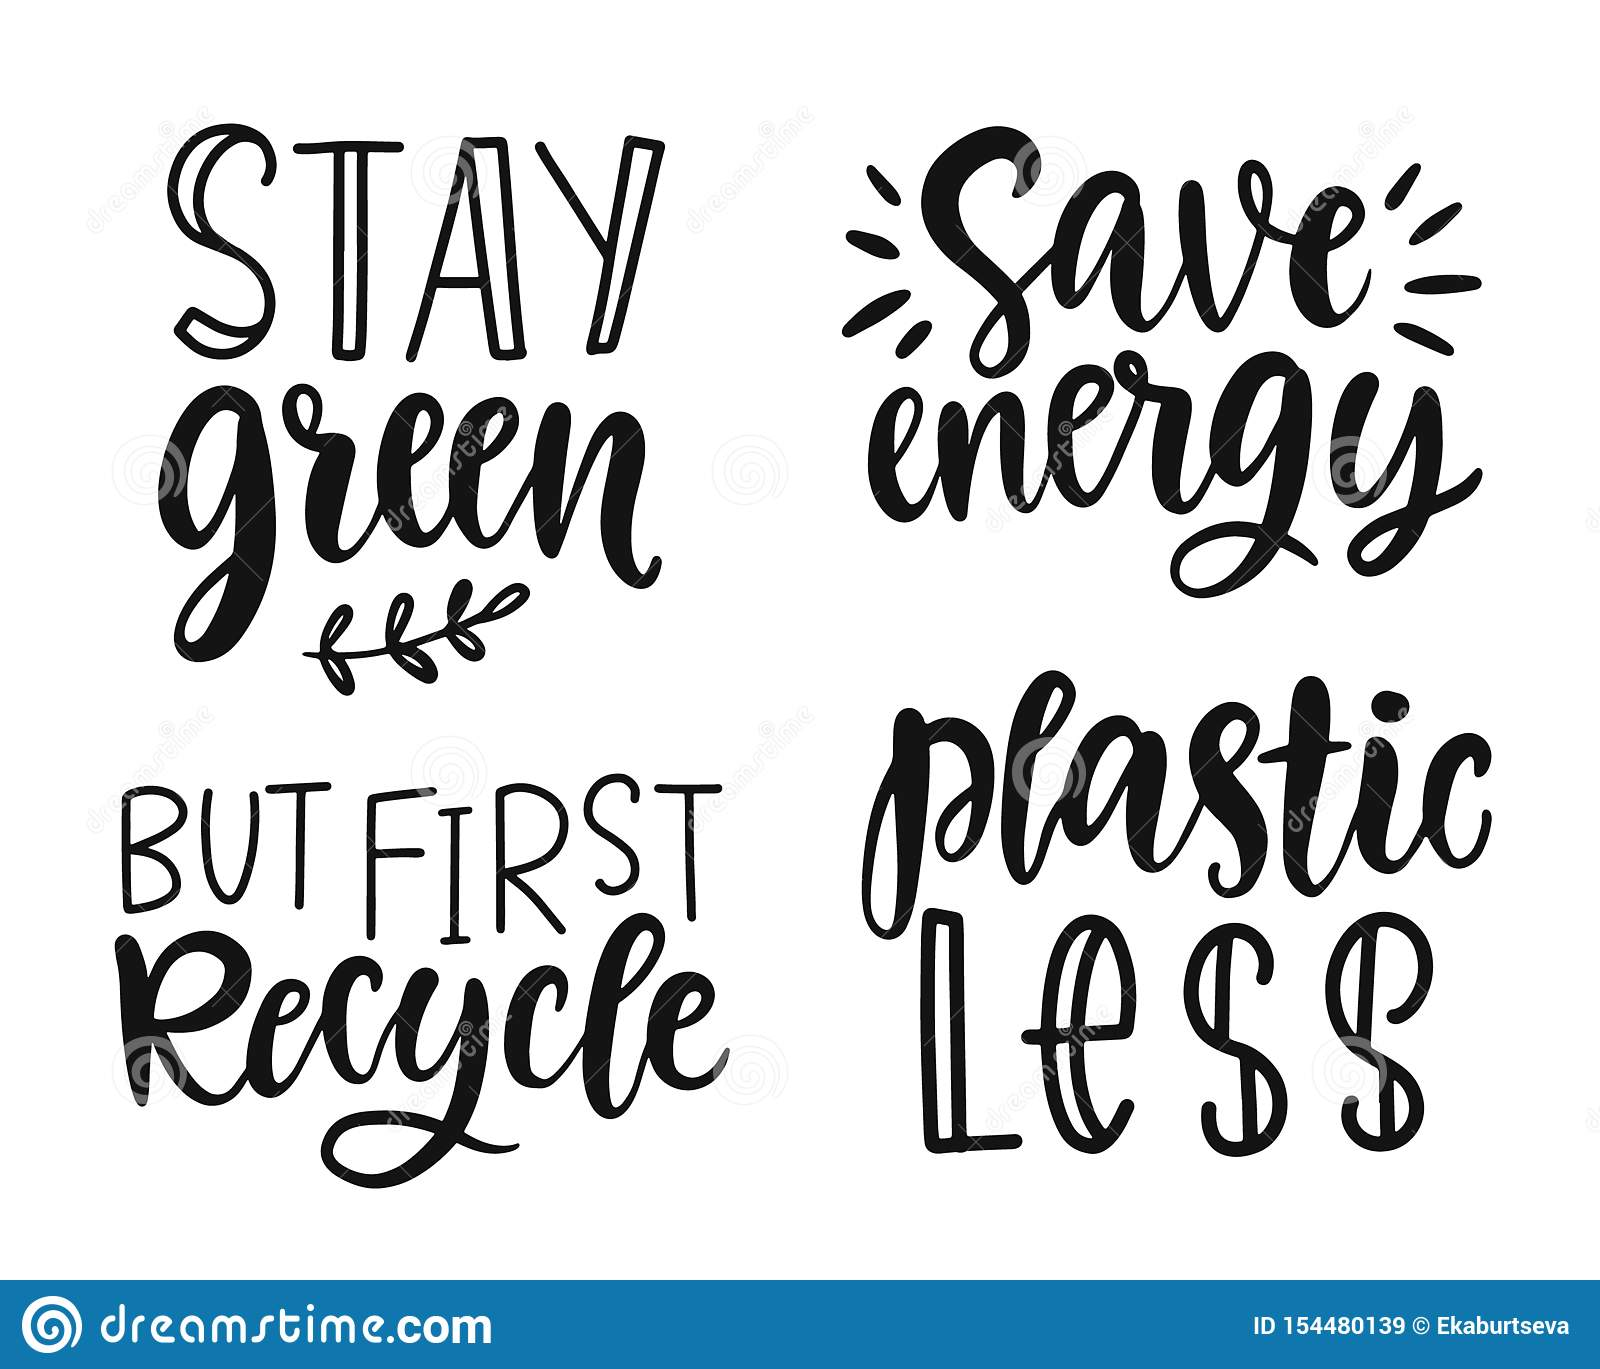 Earth Day Plastic Free Recycle Go Green Save Energy